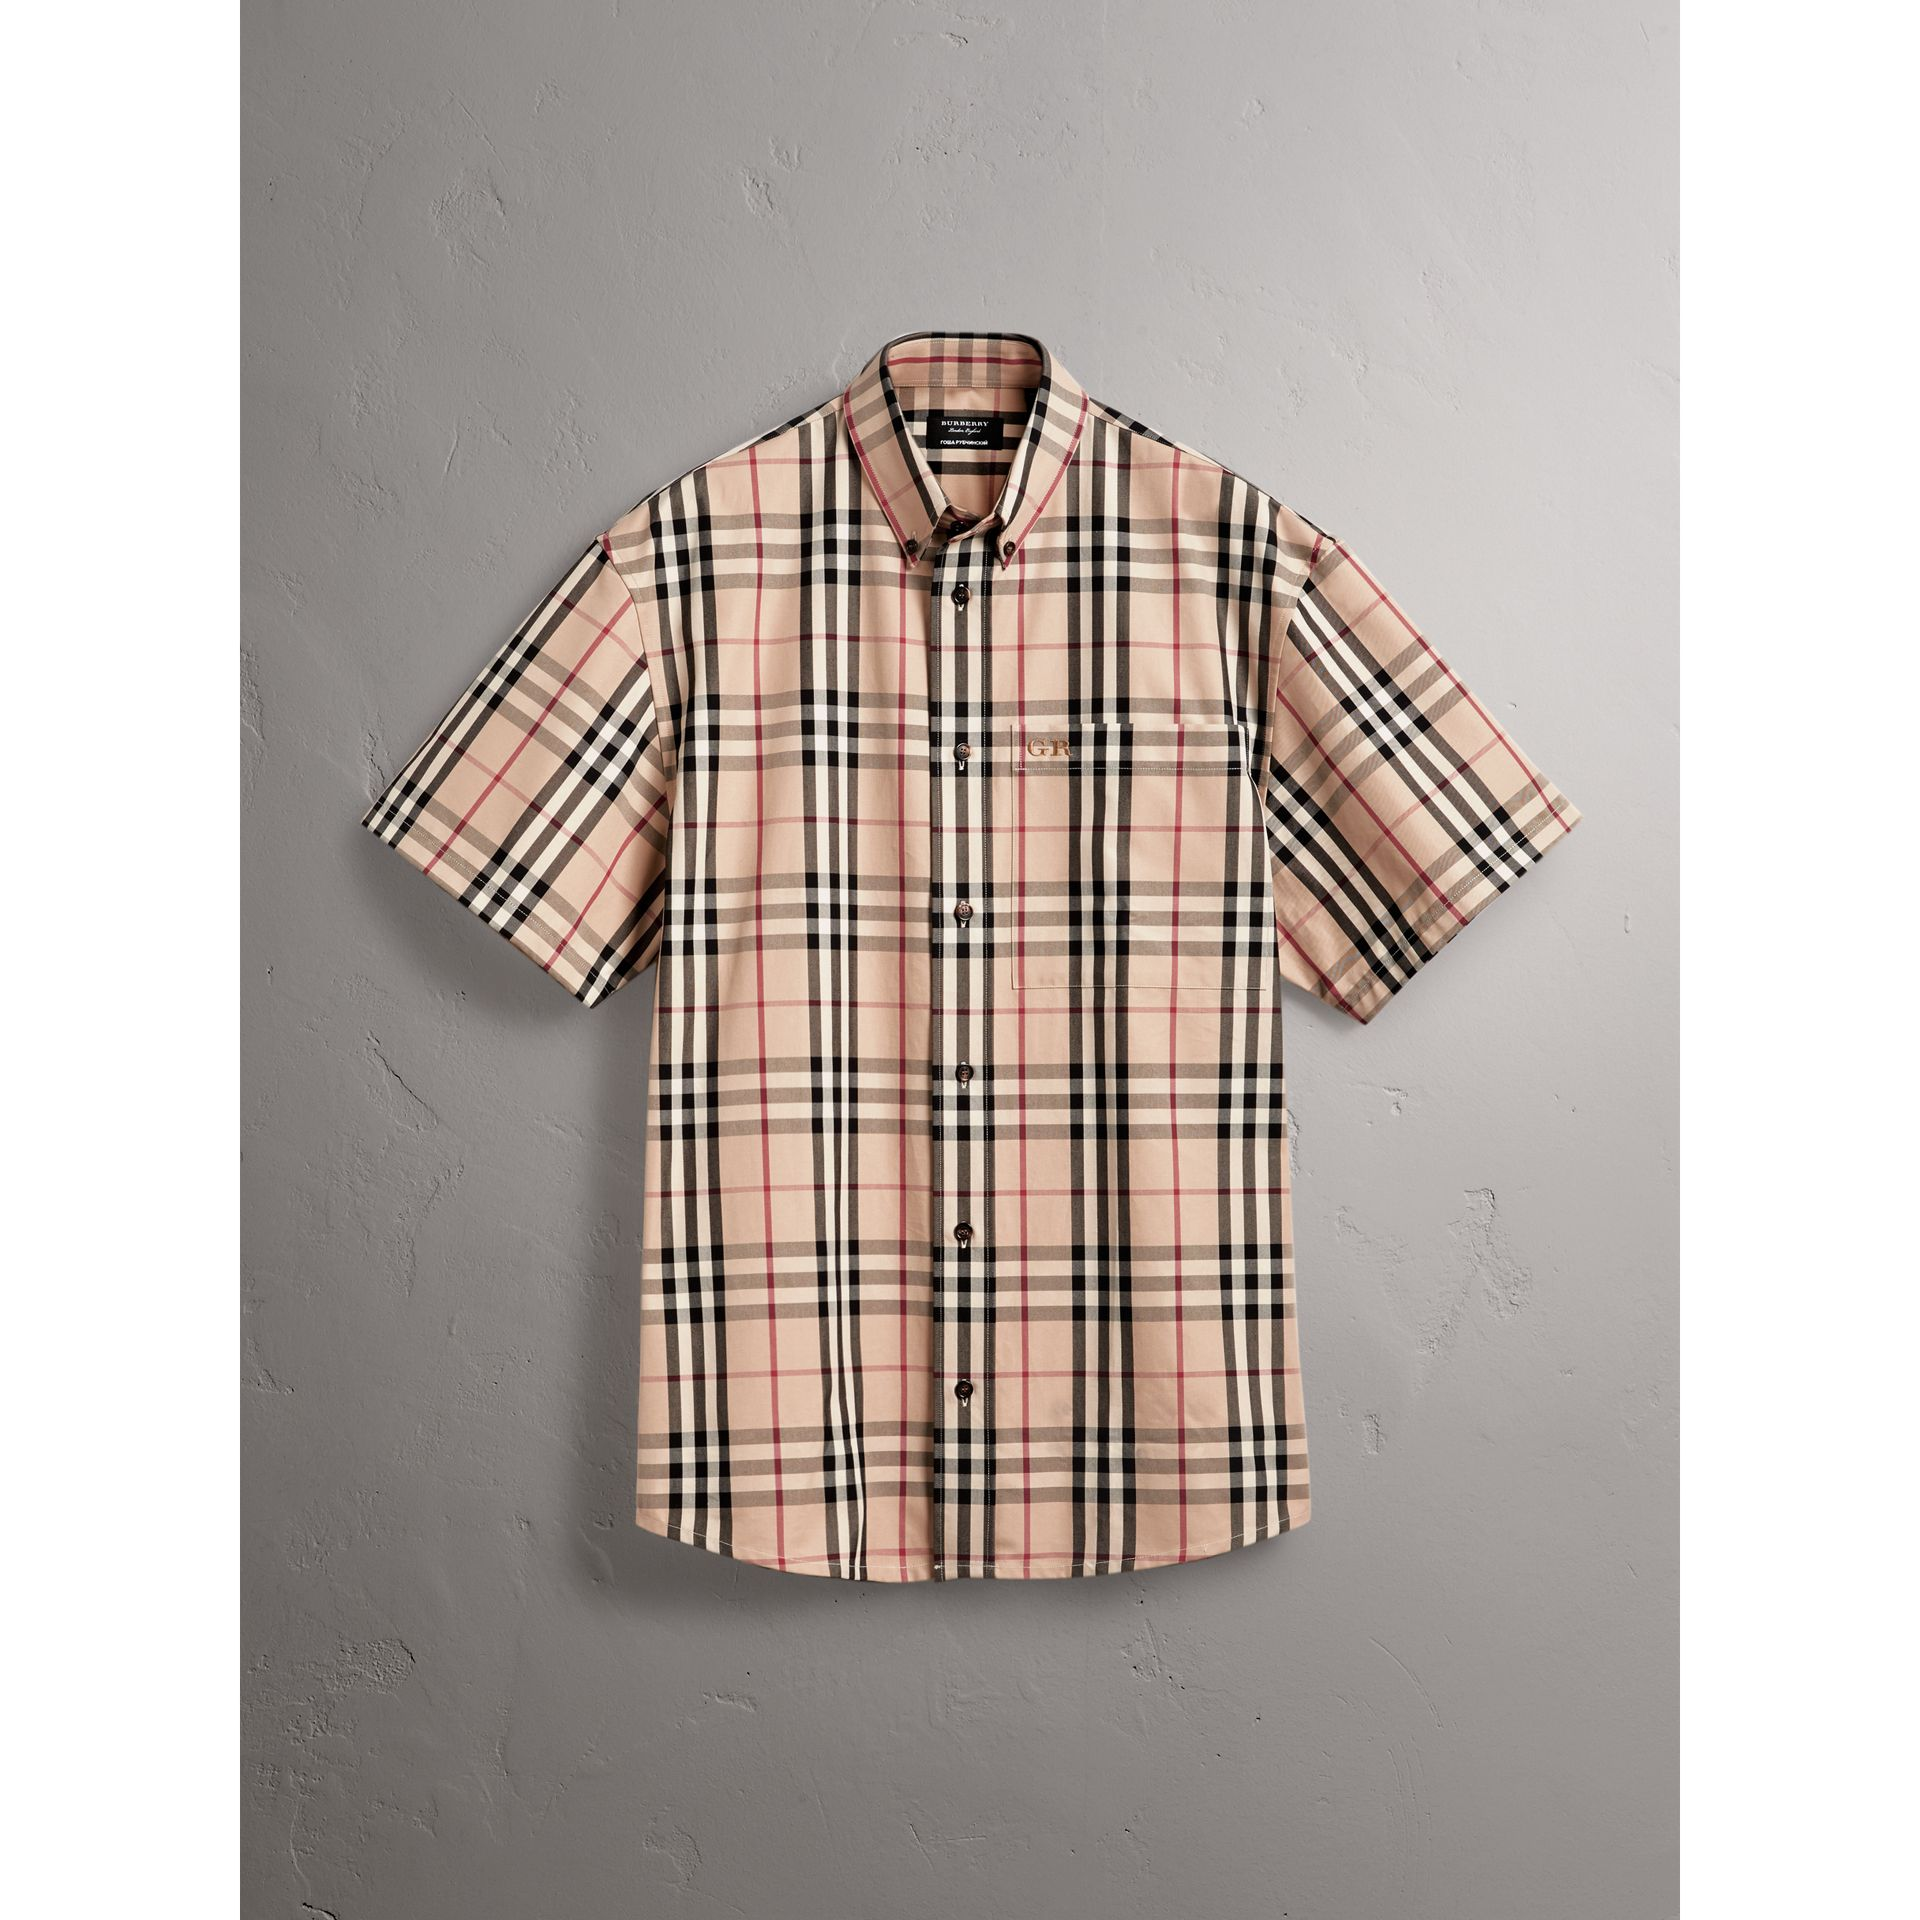 Gosha x Burberry Short-sleeve Check Shirt in Honey - Men | Burberry - gallery image 4